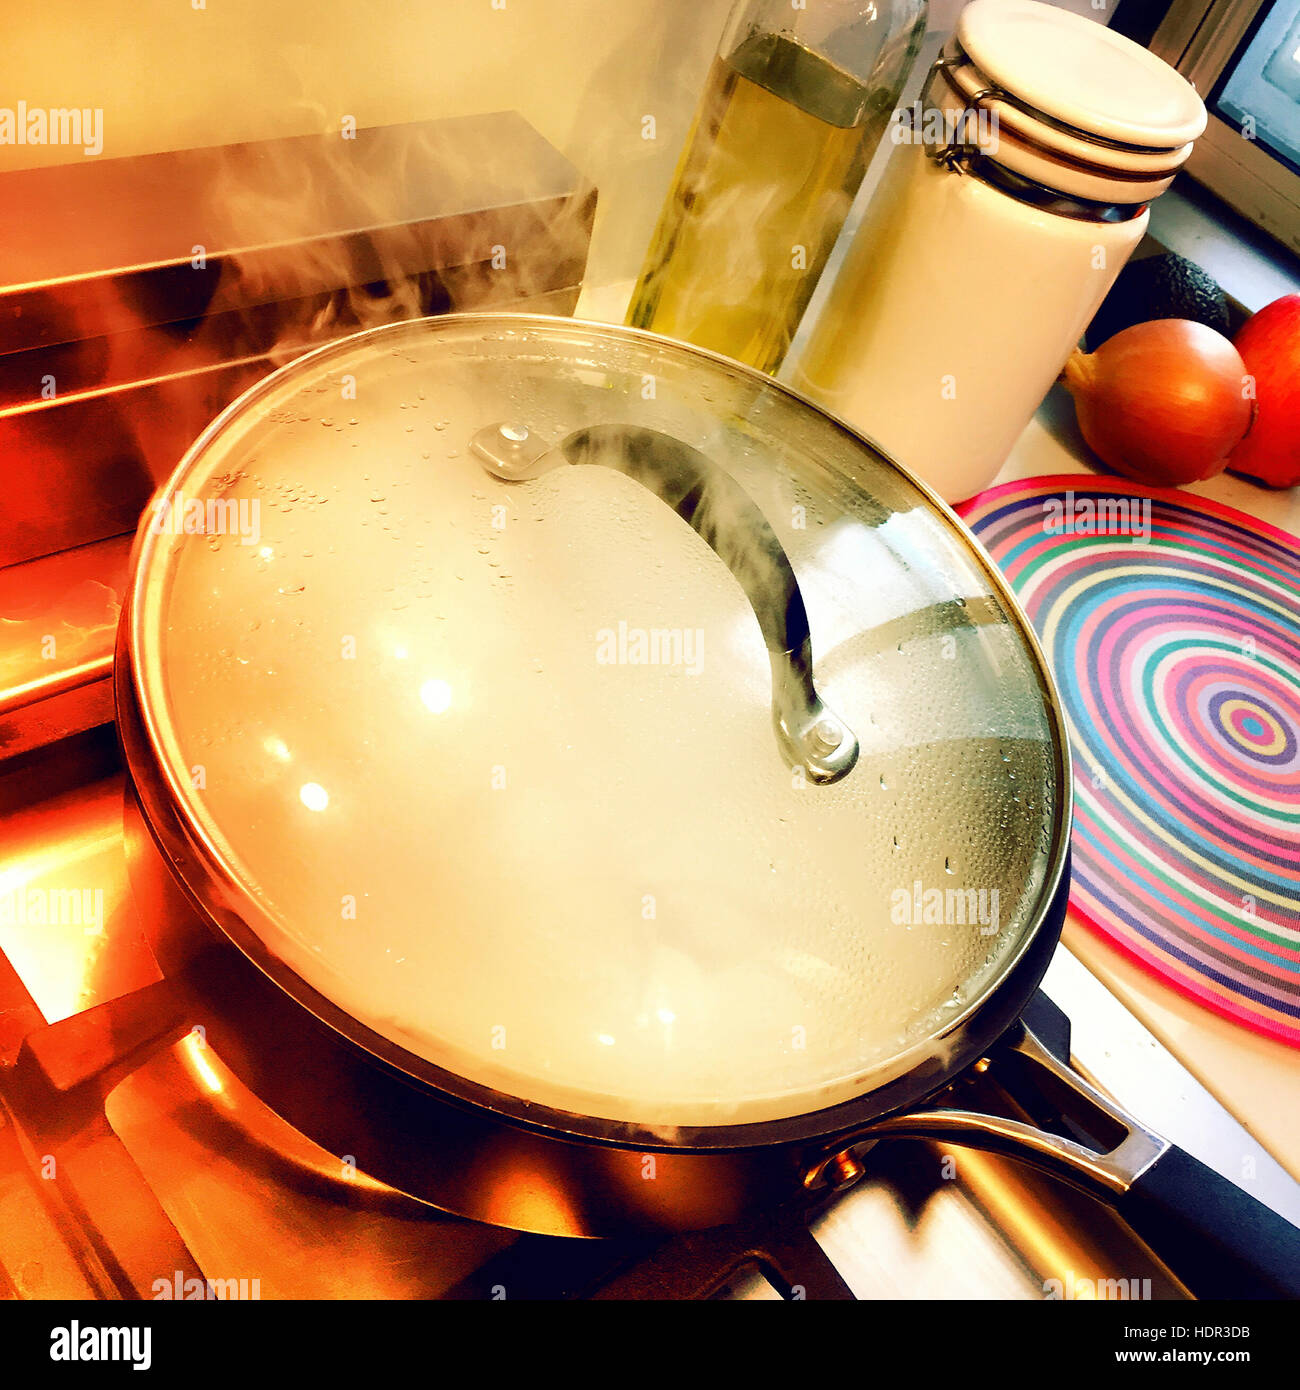 Steaming Pot on Residential Stovetop - Stock Image